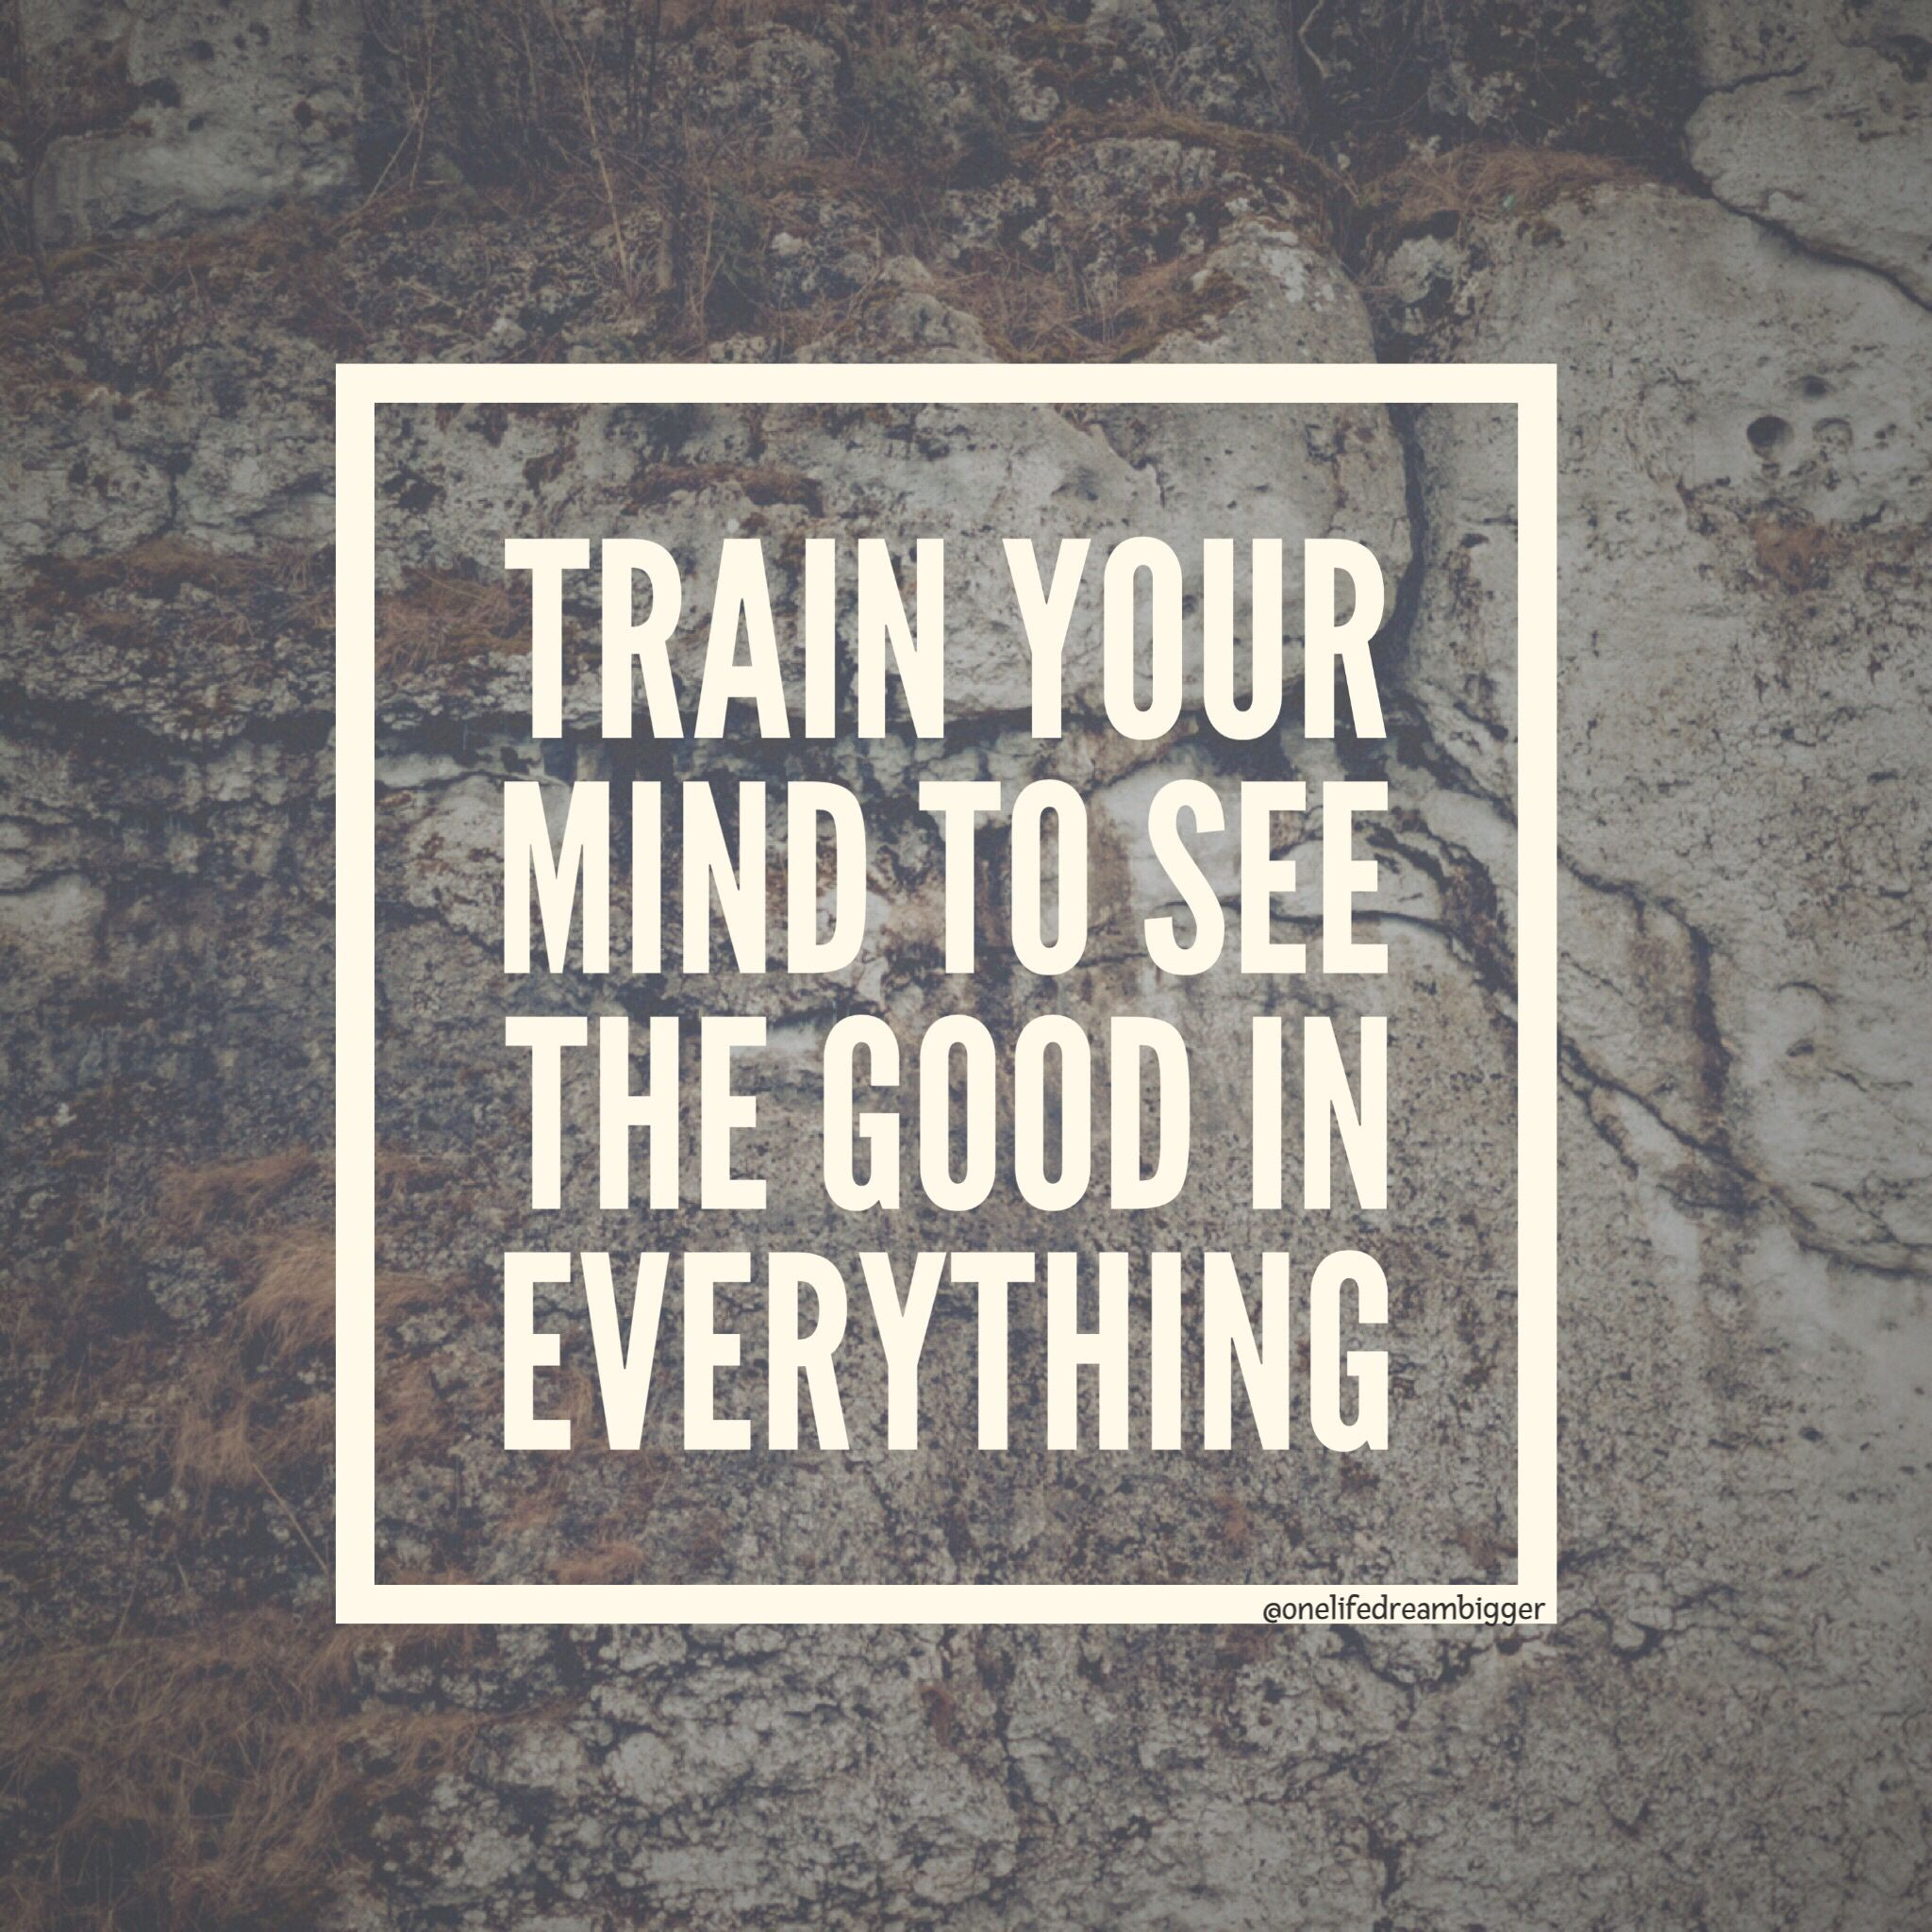 See the good!